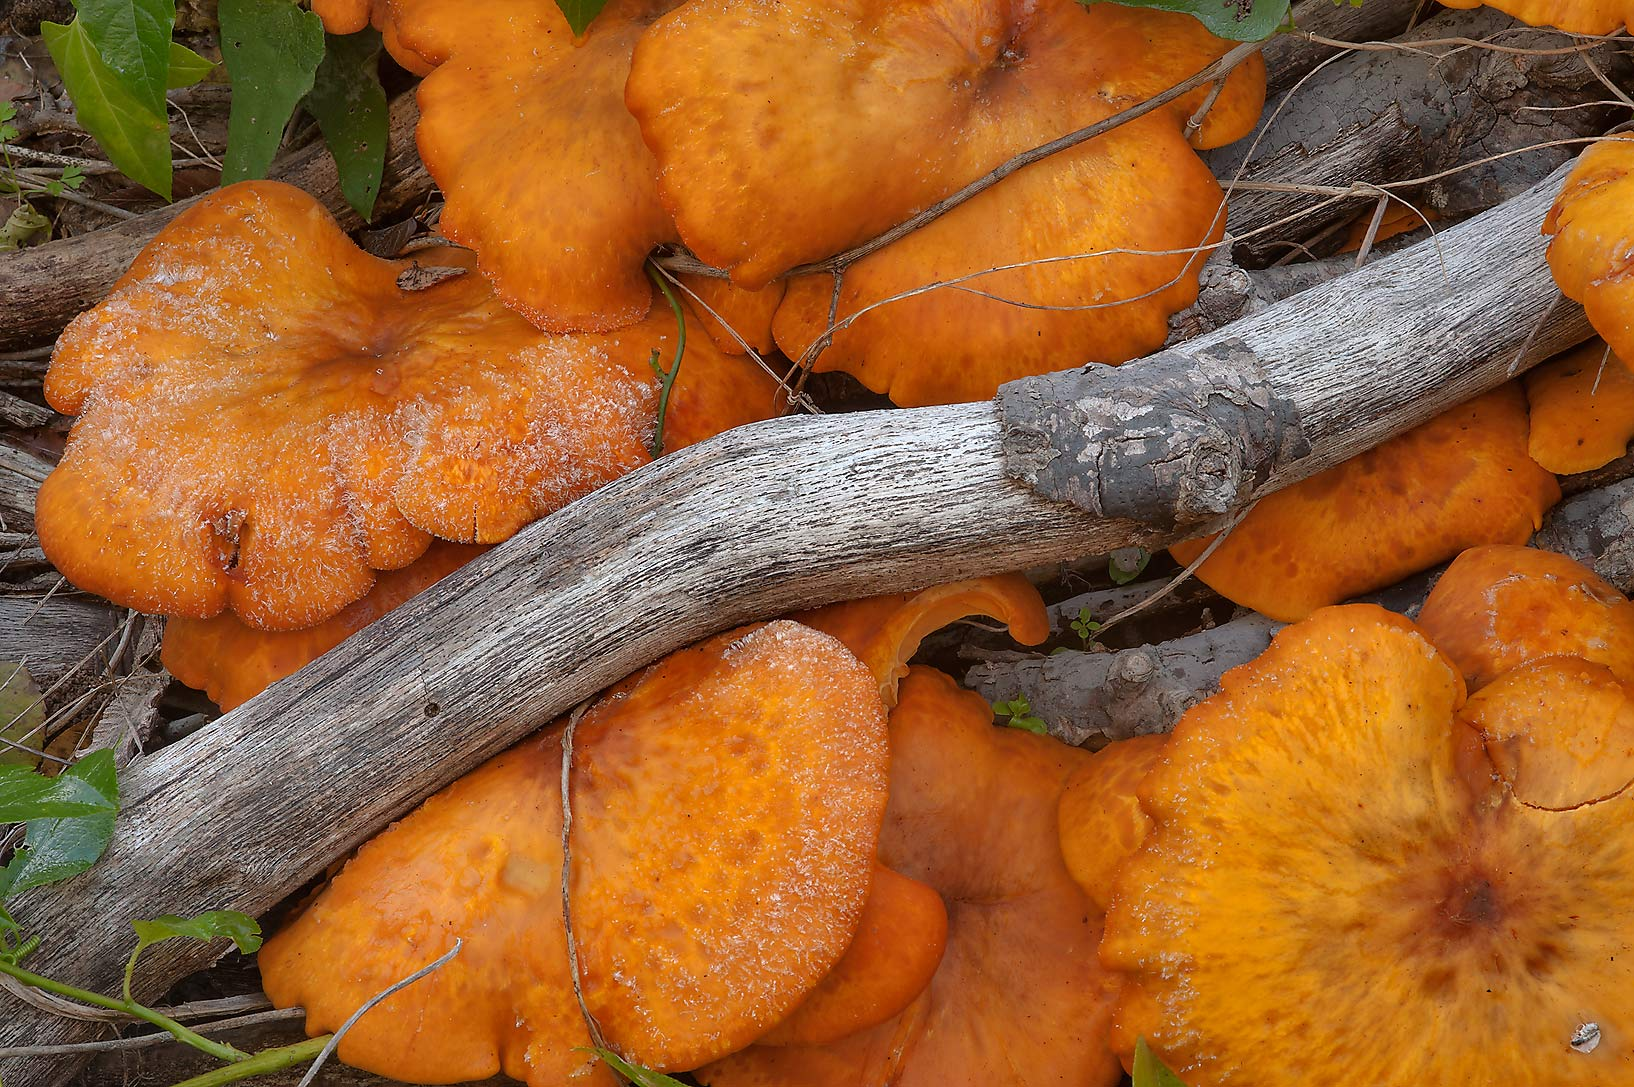 Jack-o-lantern mushrooms (Omphalotus olearius) in Bee Creek Park. College Station, Texas